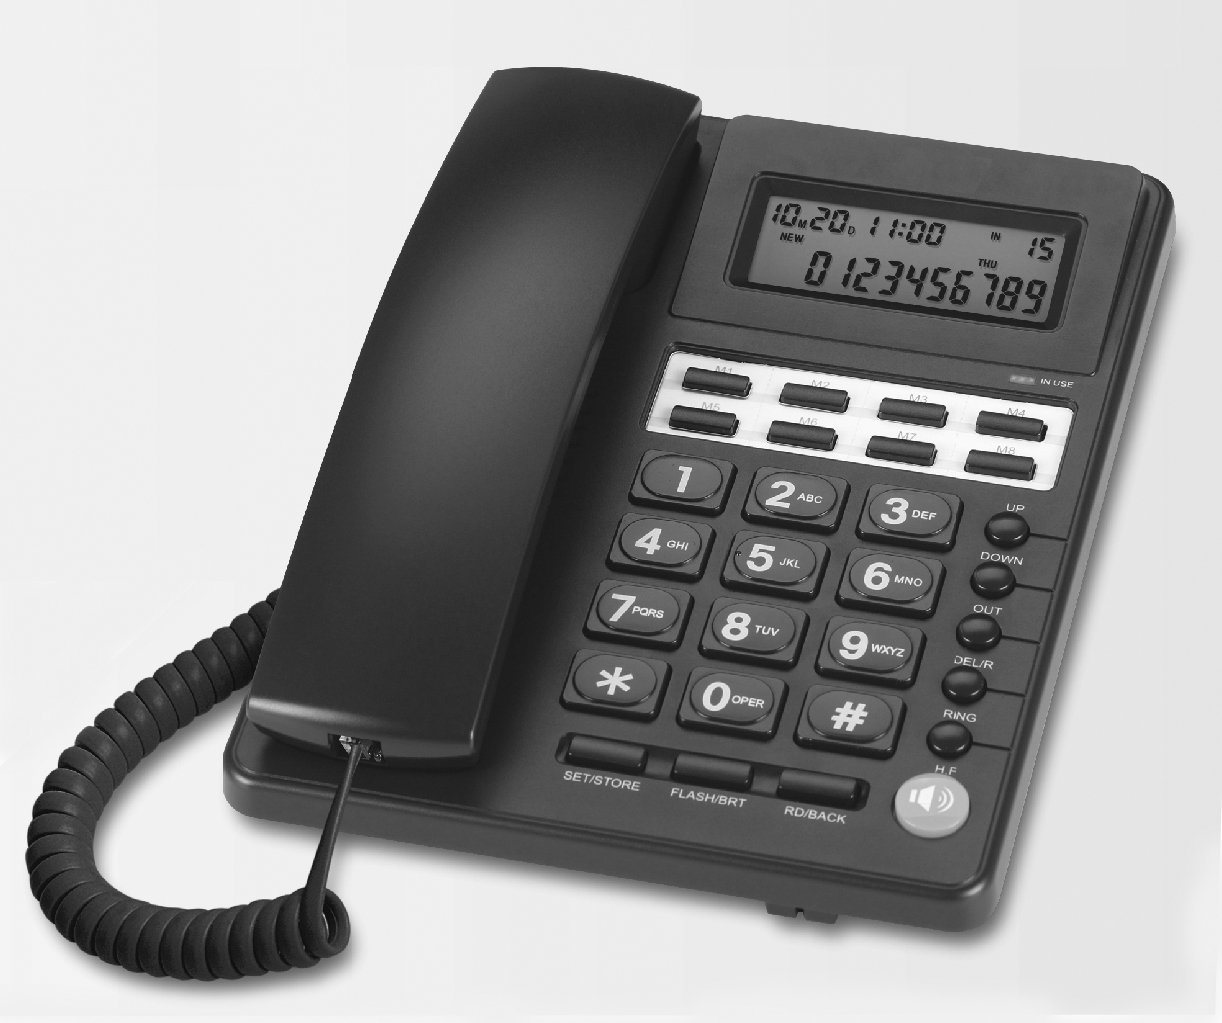 Caller ID Phone C285, Landline Phone, Office Phone, Memories Phone, One Touch Dialing Phone